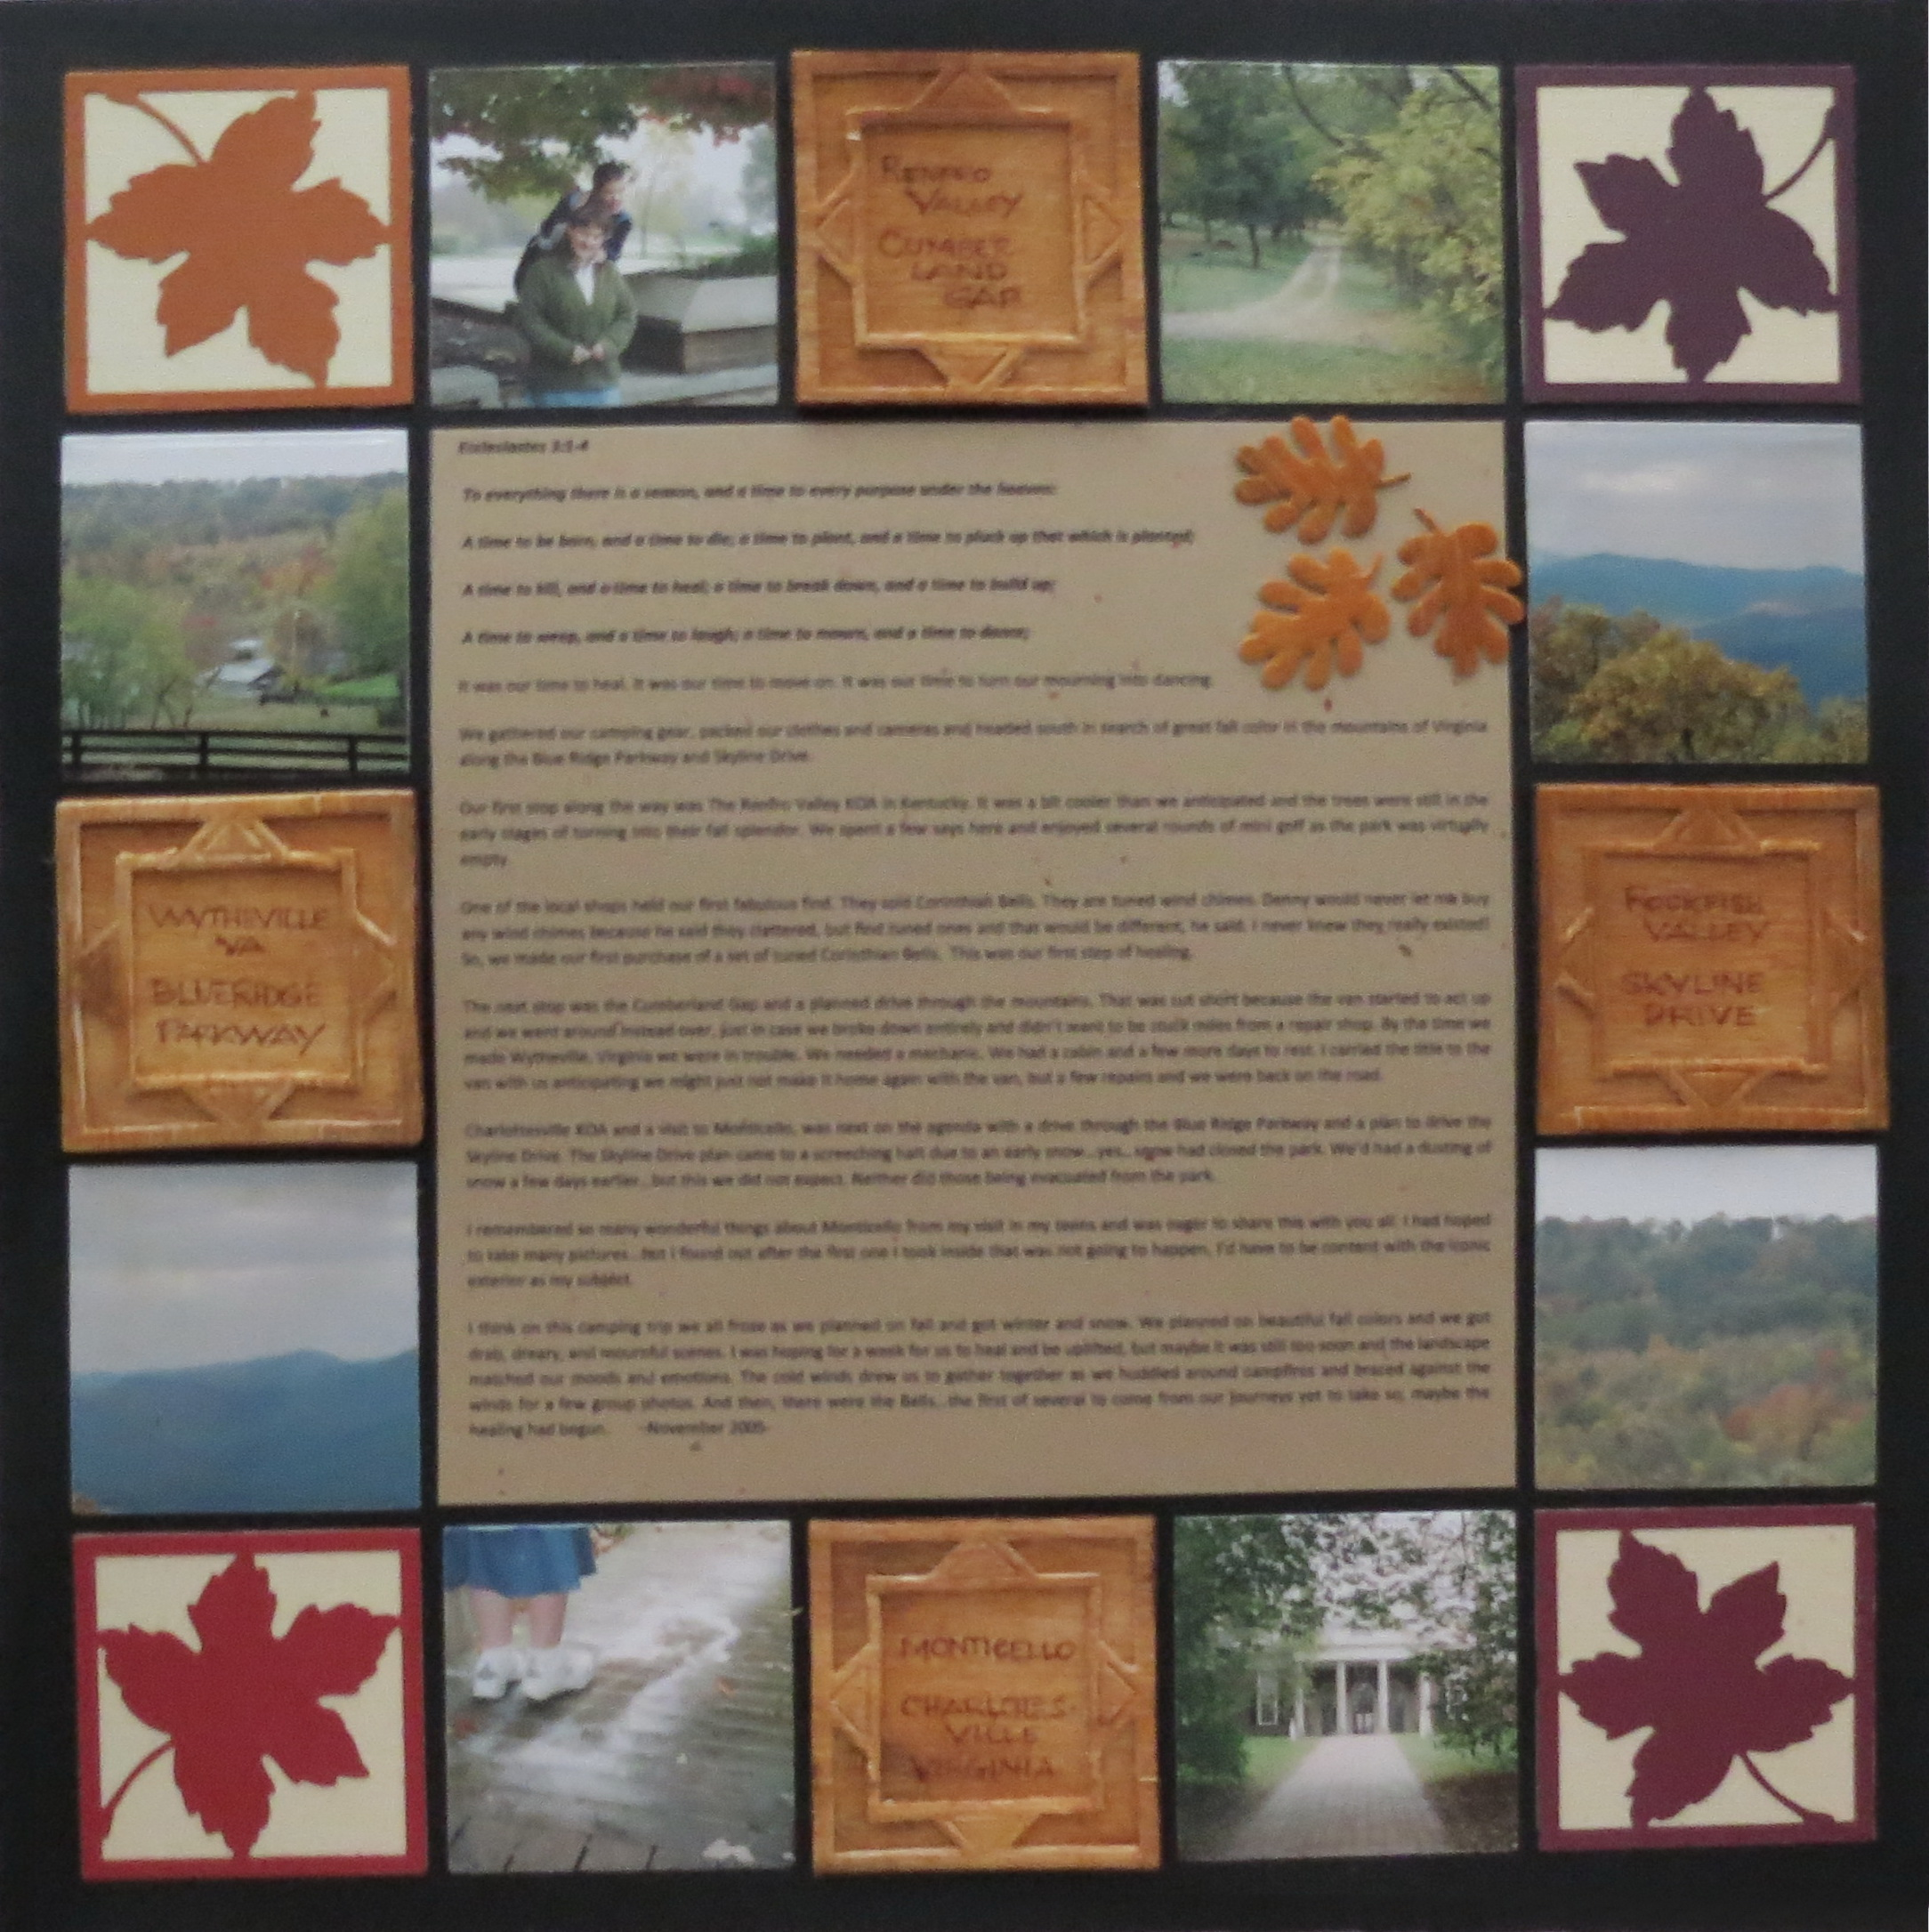 Scrapbook ideas and themes - Mm Tys Rustic Scrapbook Ideas